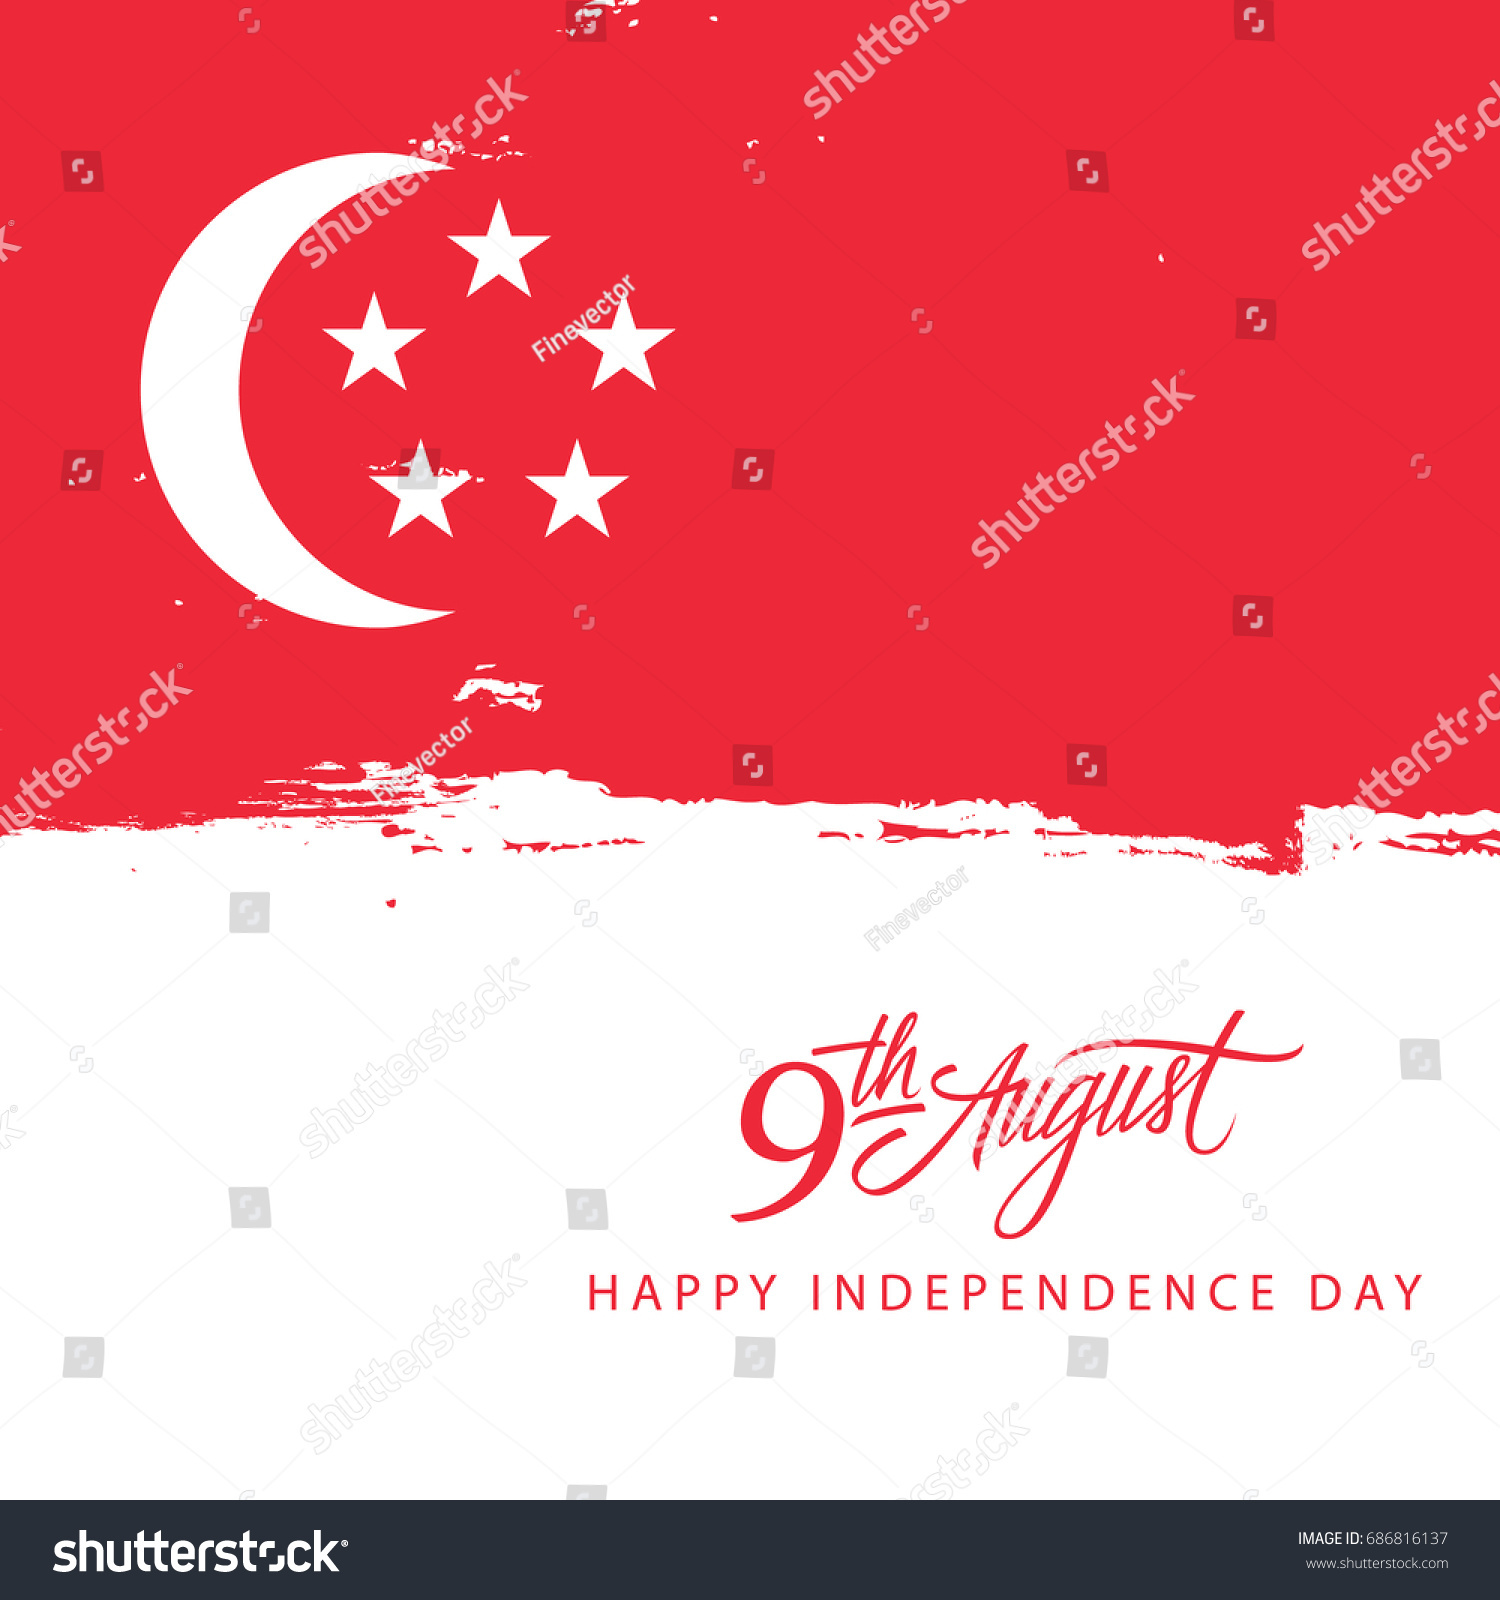 Singapore Happy Independence Day 9 August Stock Vector 686816137